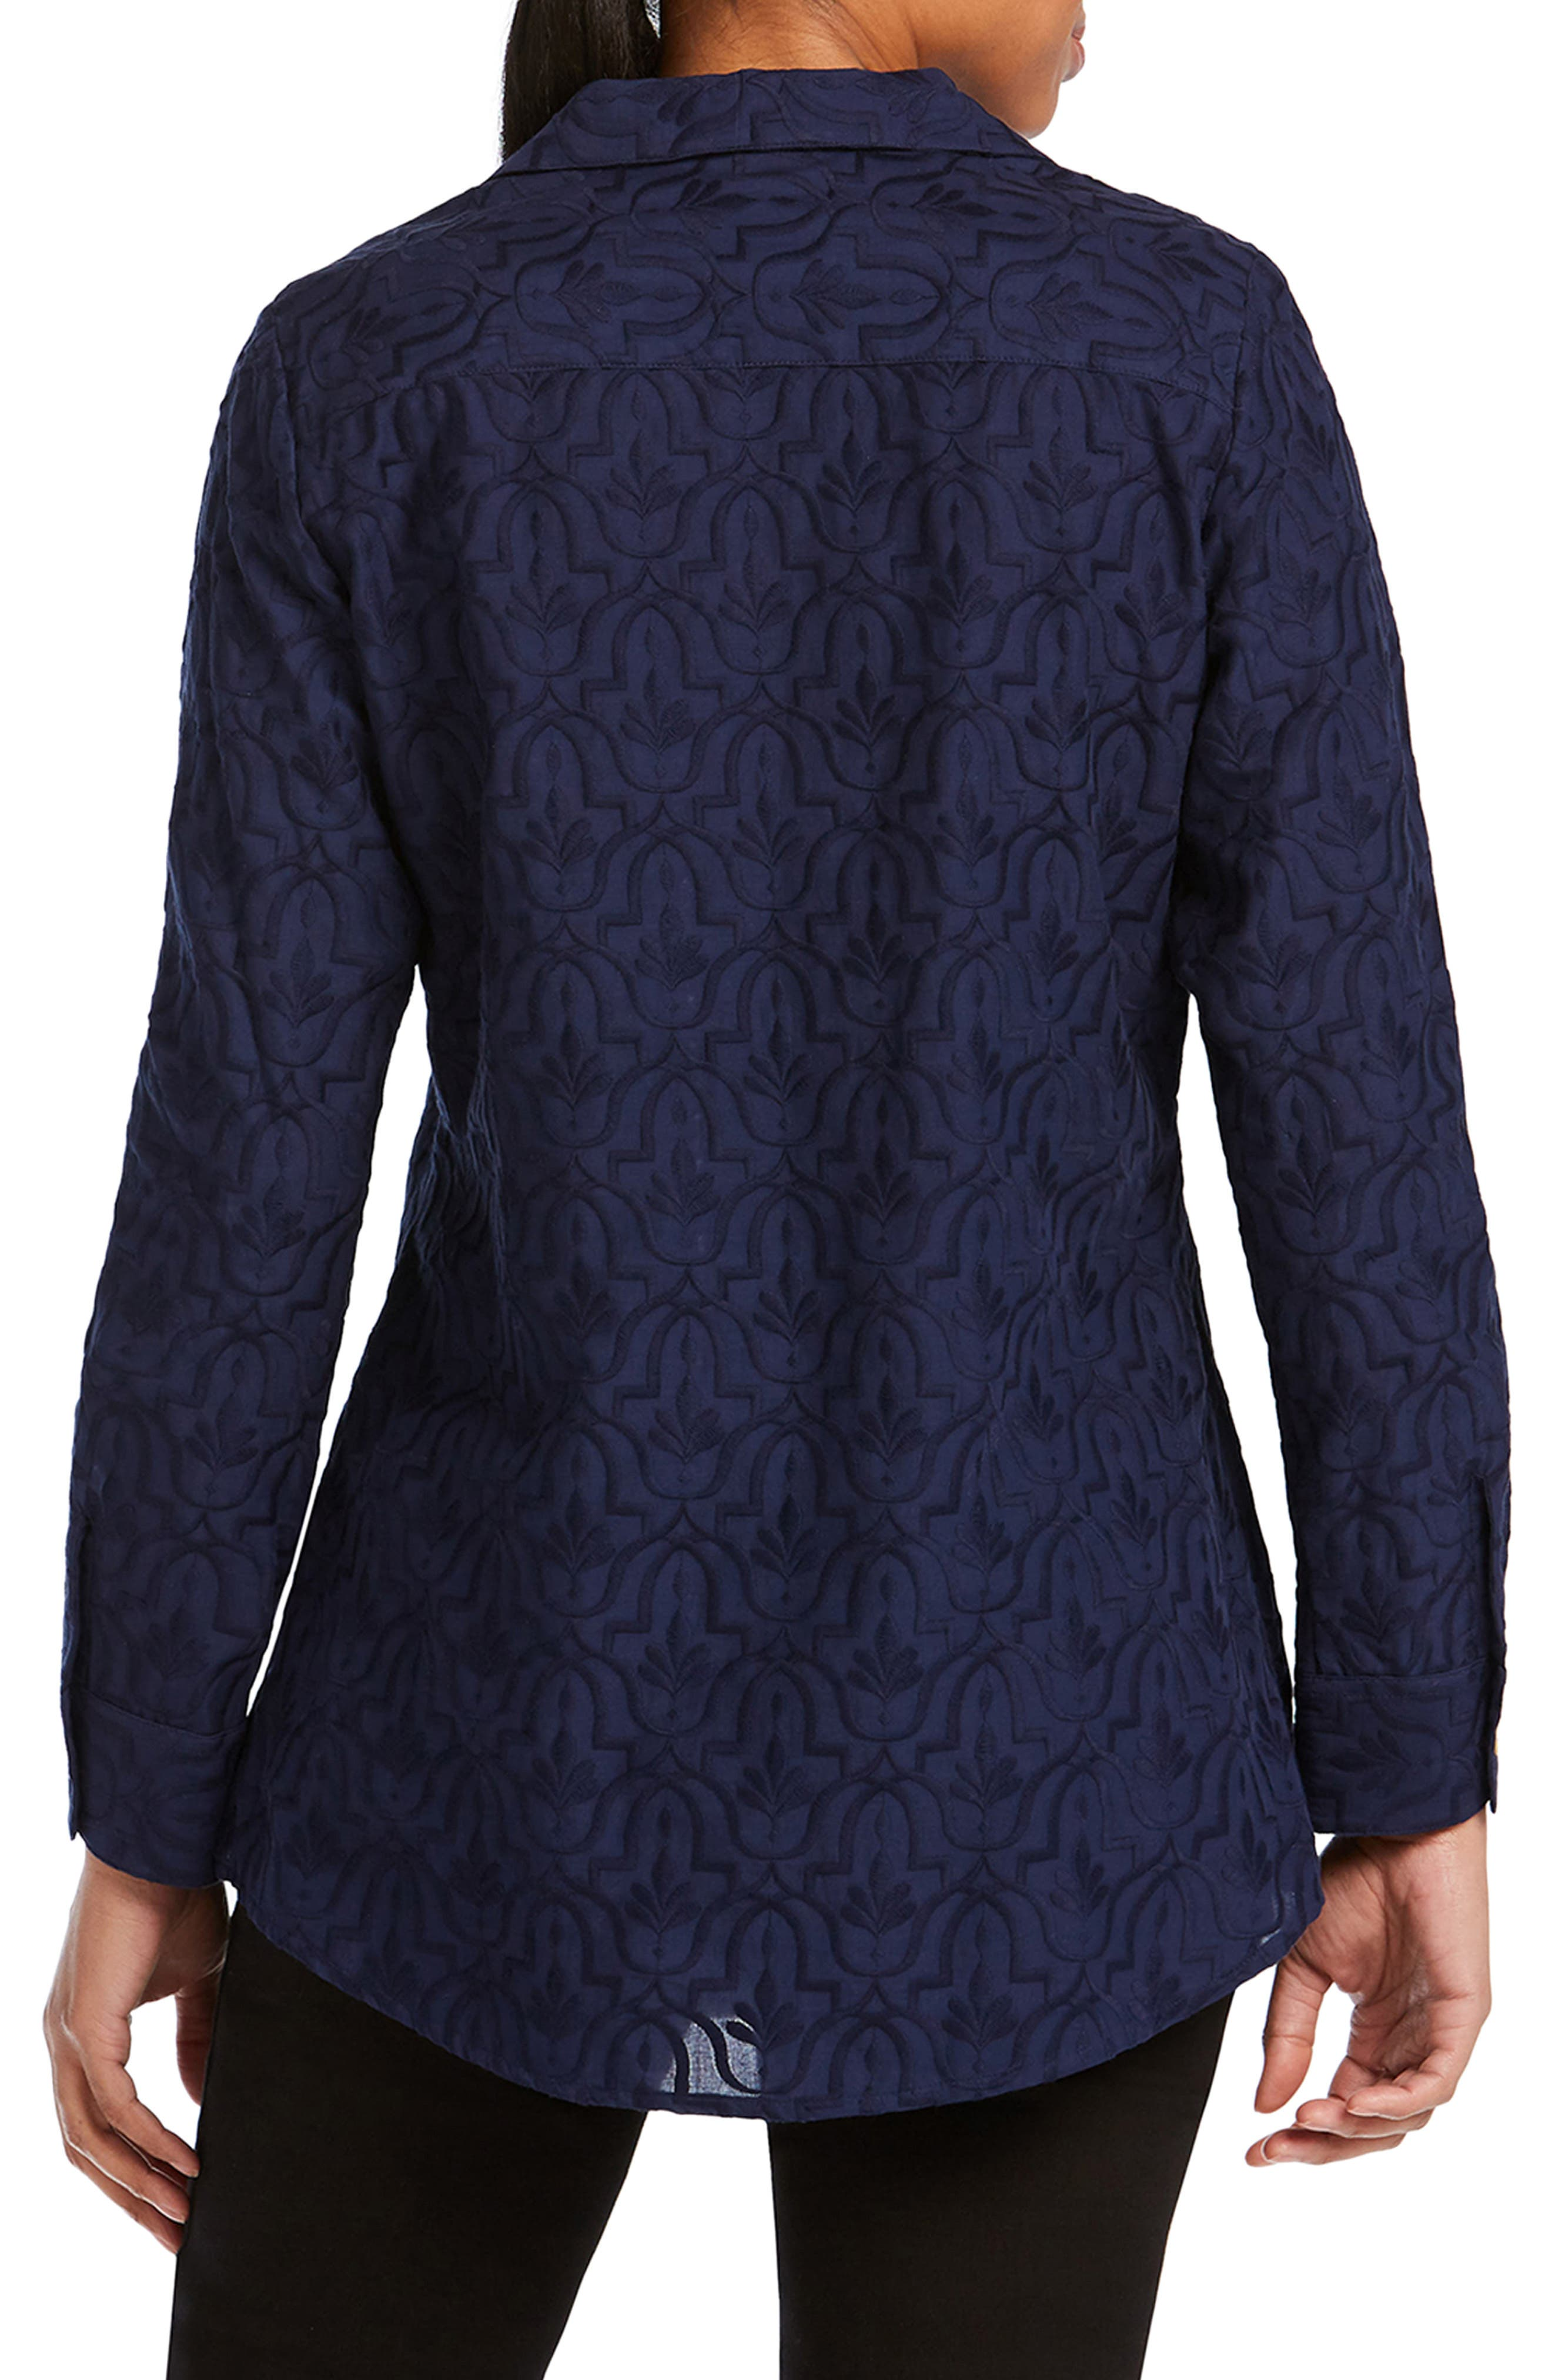 Ivy Mosaic Embroidery Cotton Tunic Top,                             Alternate thumbnail 2, color,                             NAVY